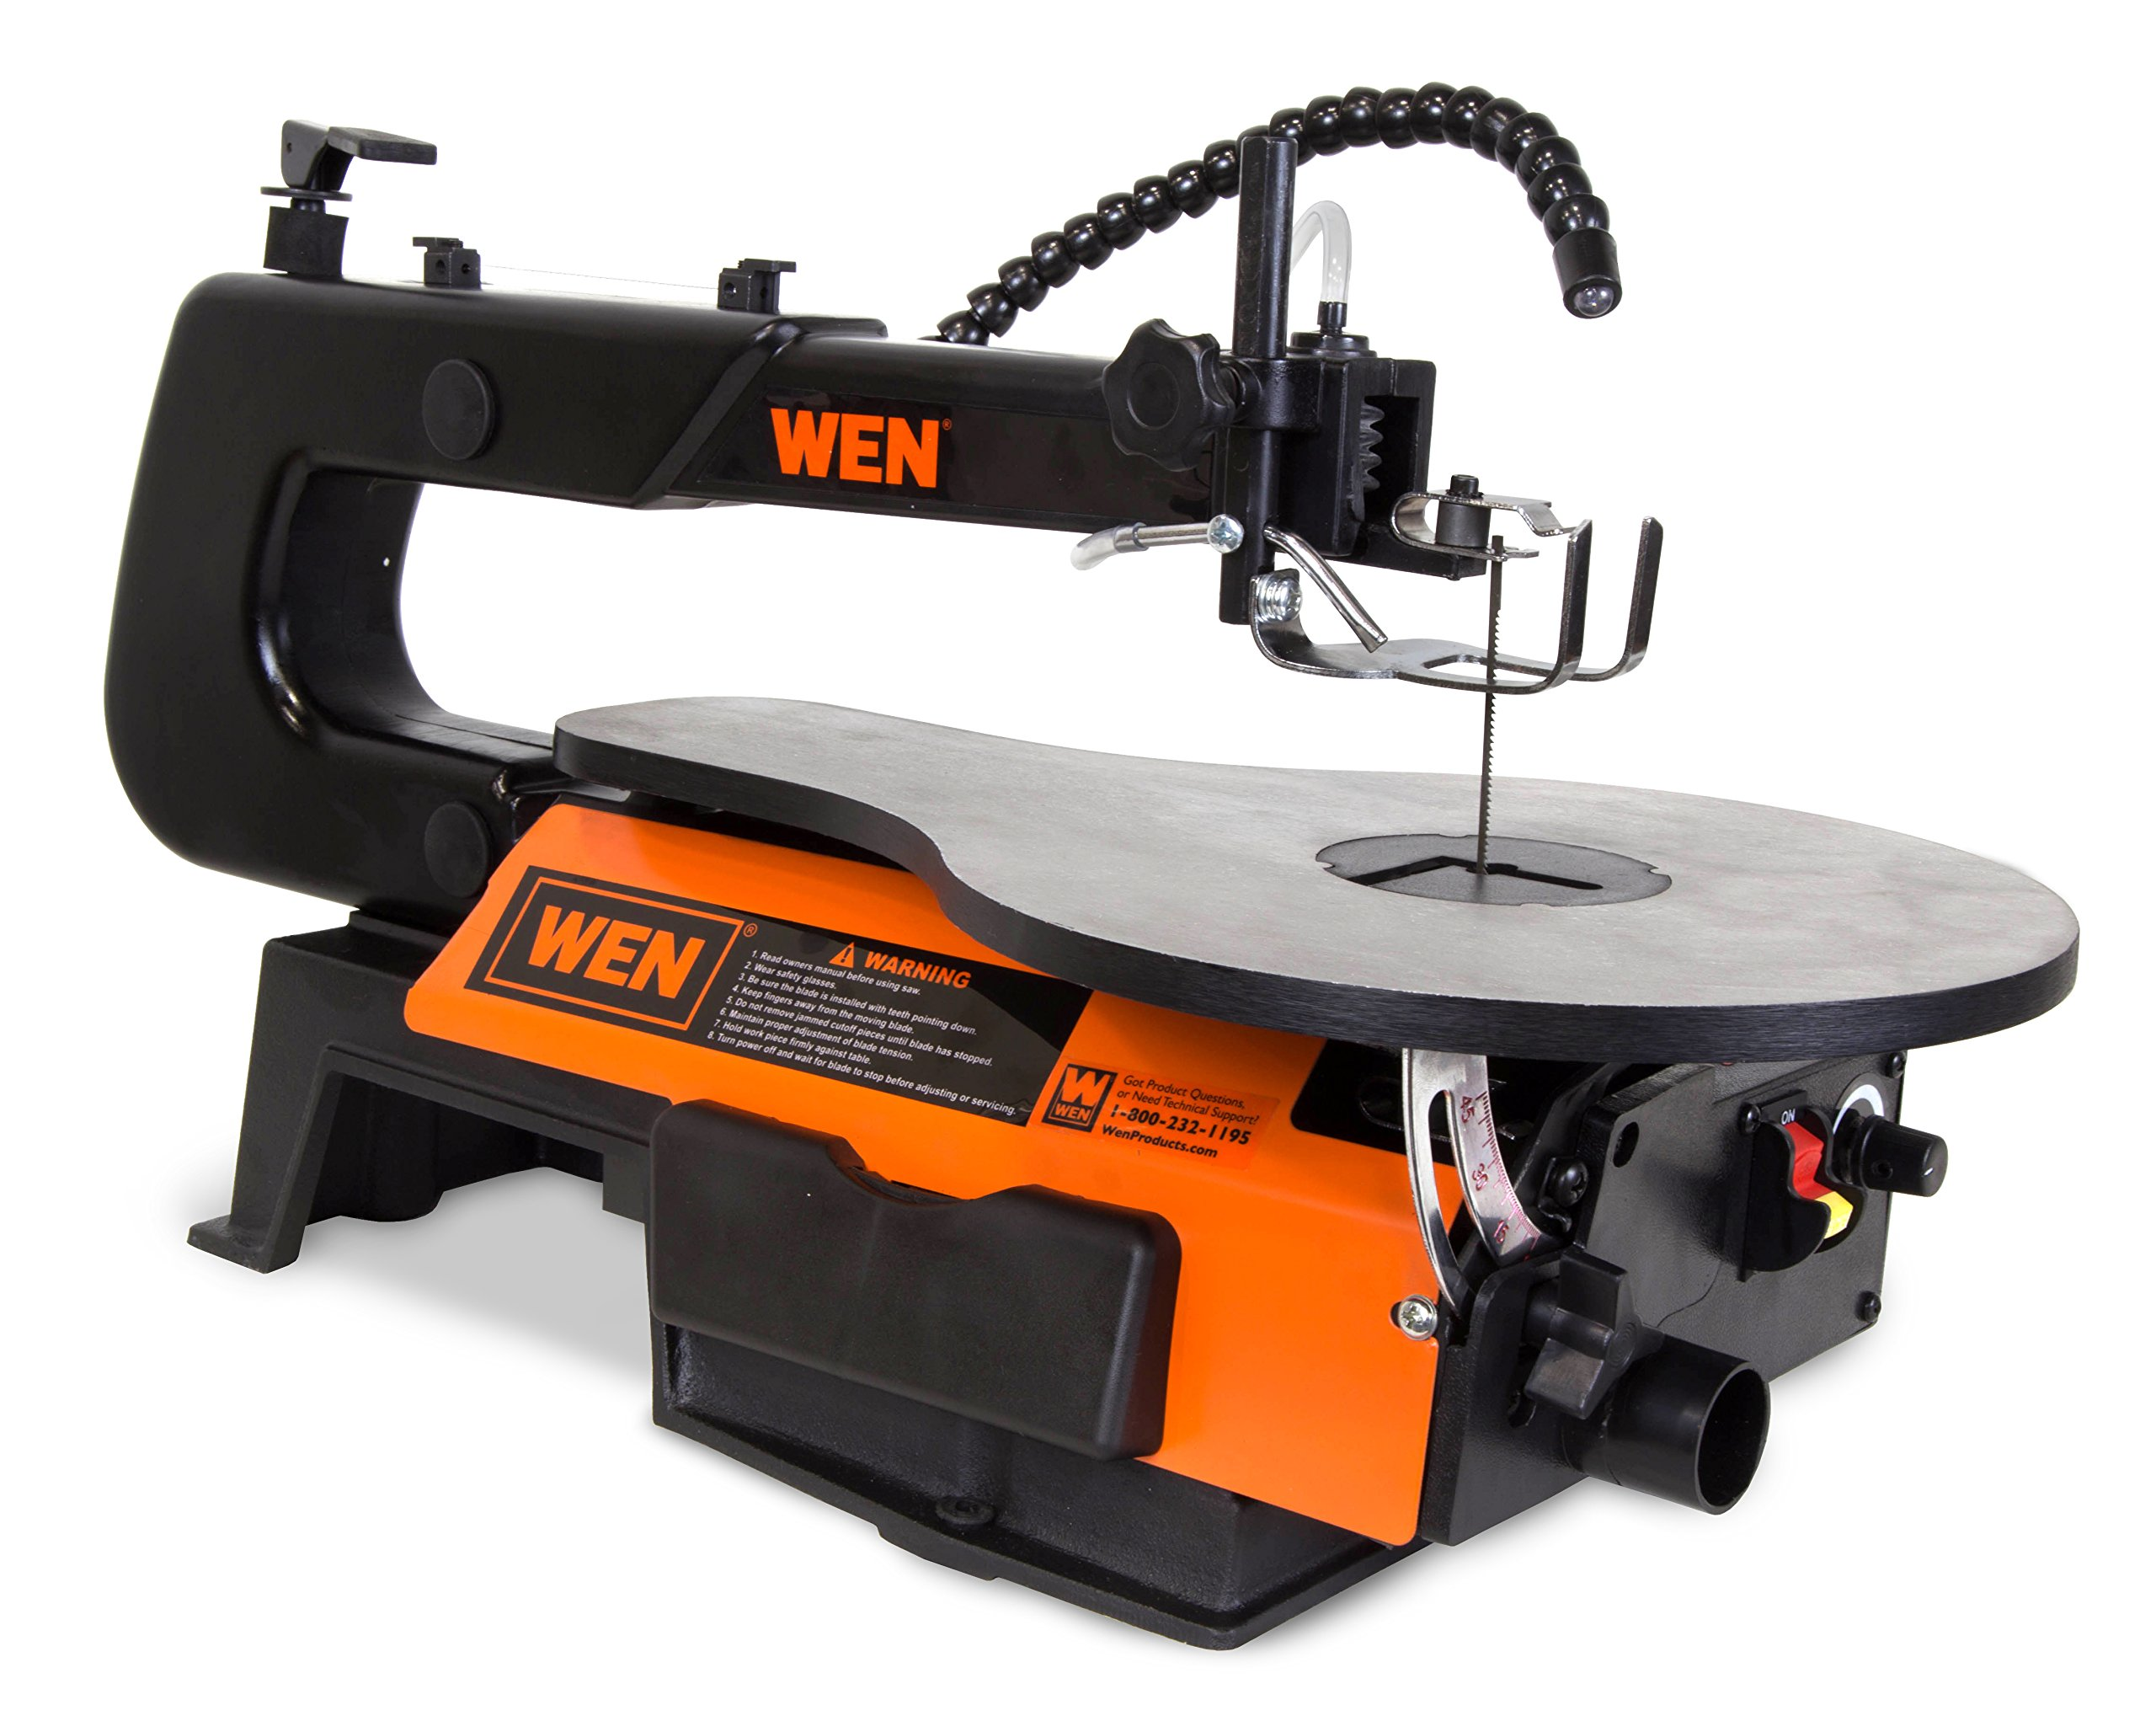 WEN 3920 16-Inch Two-Direction Variable Speed Scroll Saw with Flexible LED Light by WEN